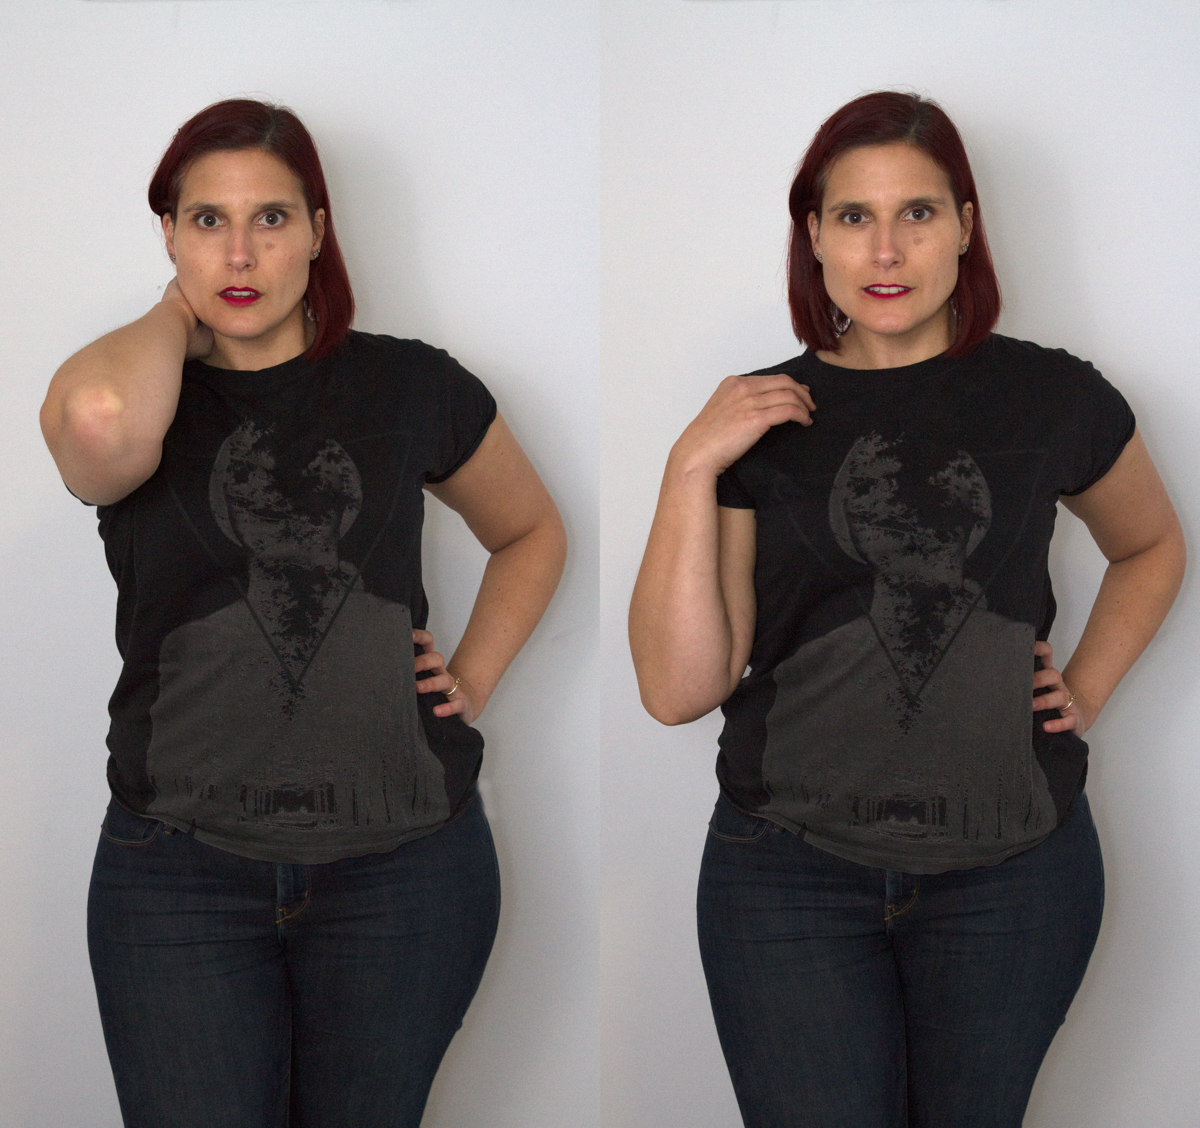 Fig. 4: Oh my! Don't I look shocked on the left?  My arm has shrunk and appears to be all elbow!  By dropping my elbow on the right I have increased the length of my arm into much more normal proportions.